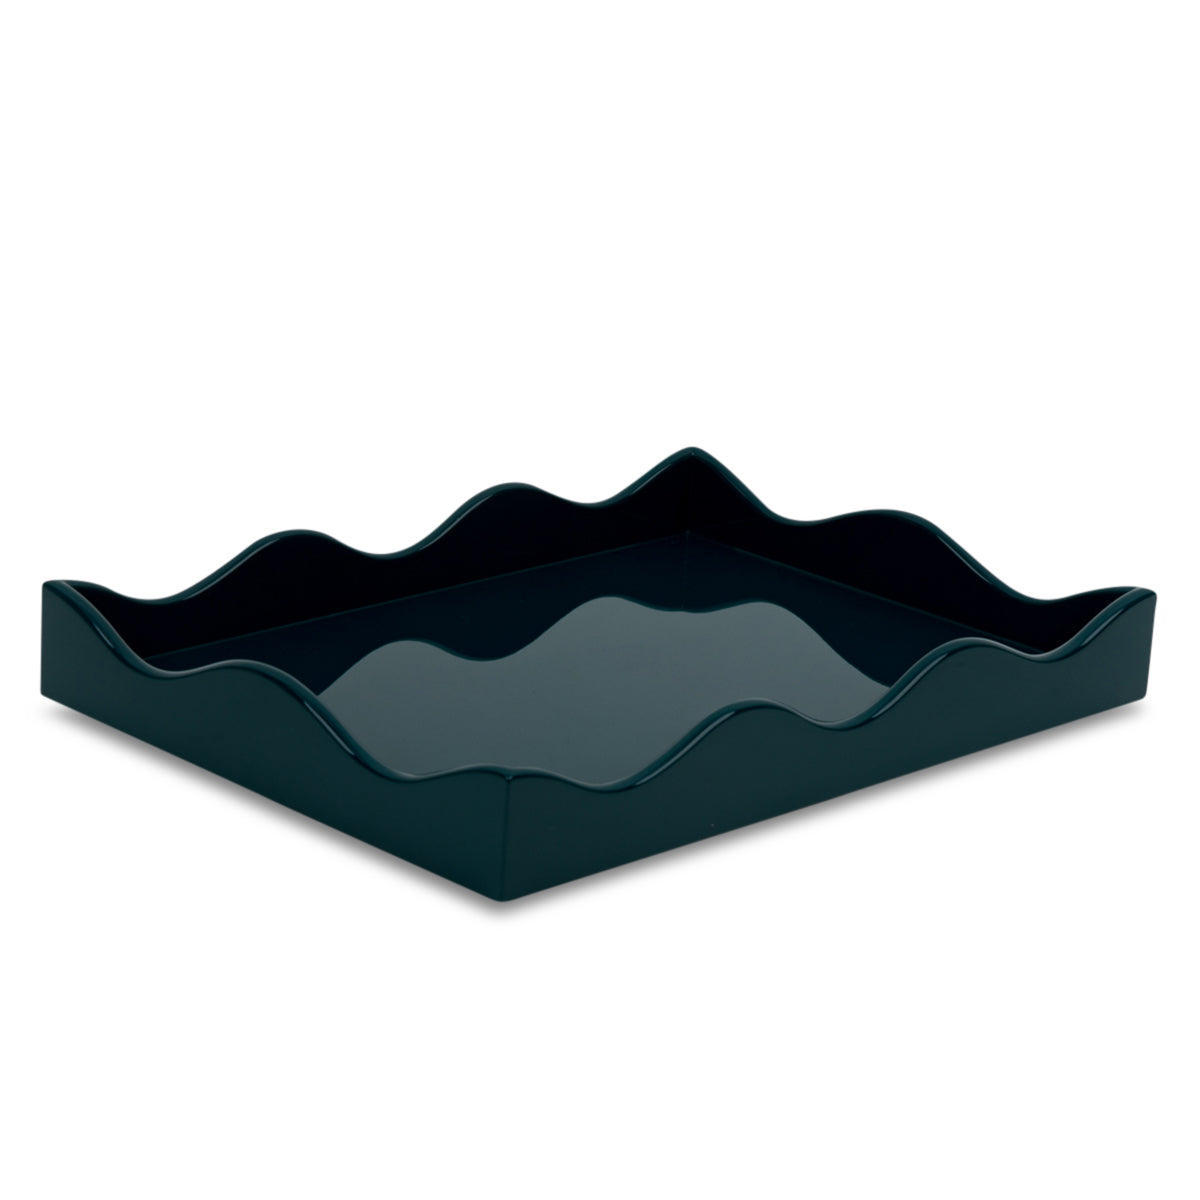 Small Belles Rives Tray - Marine Blue